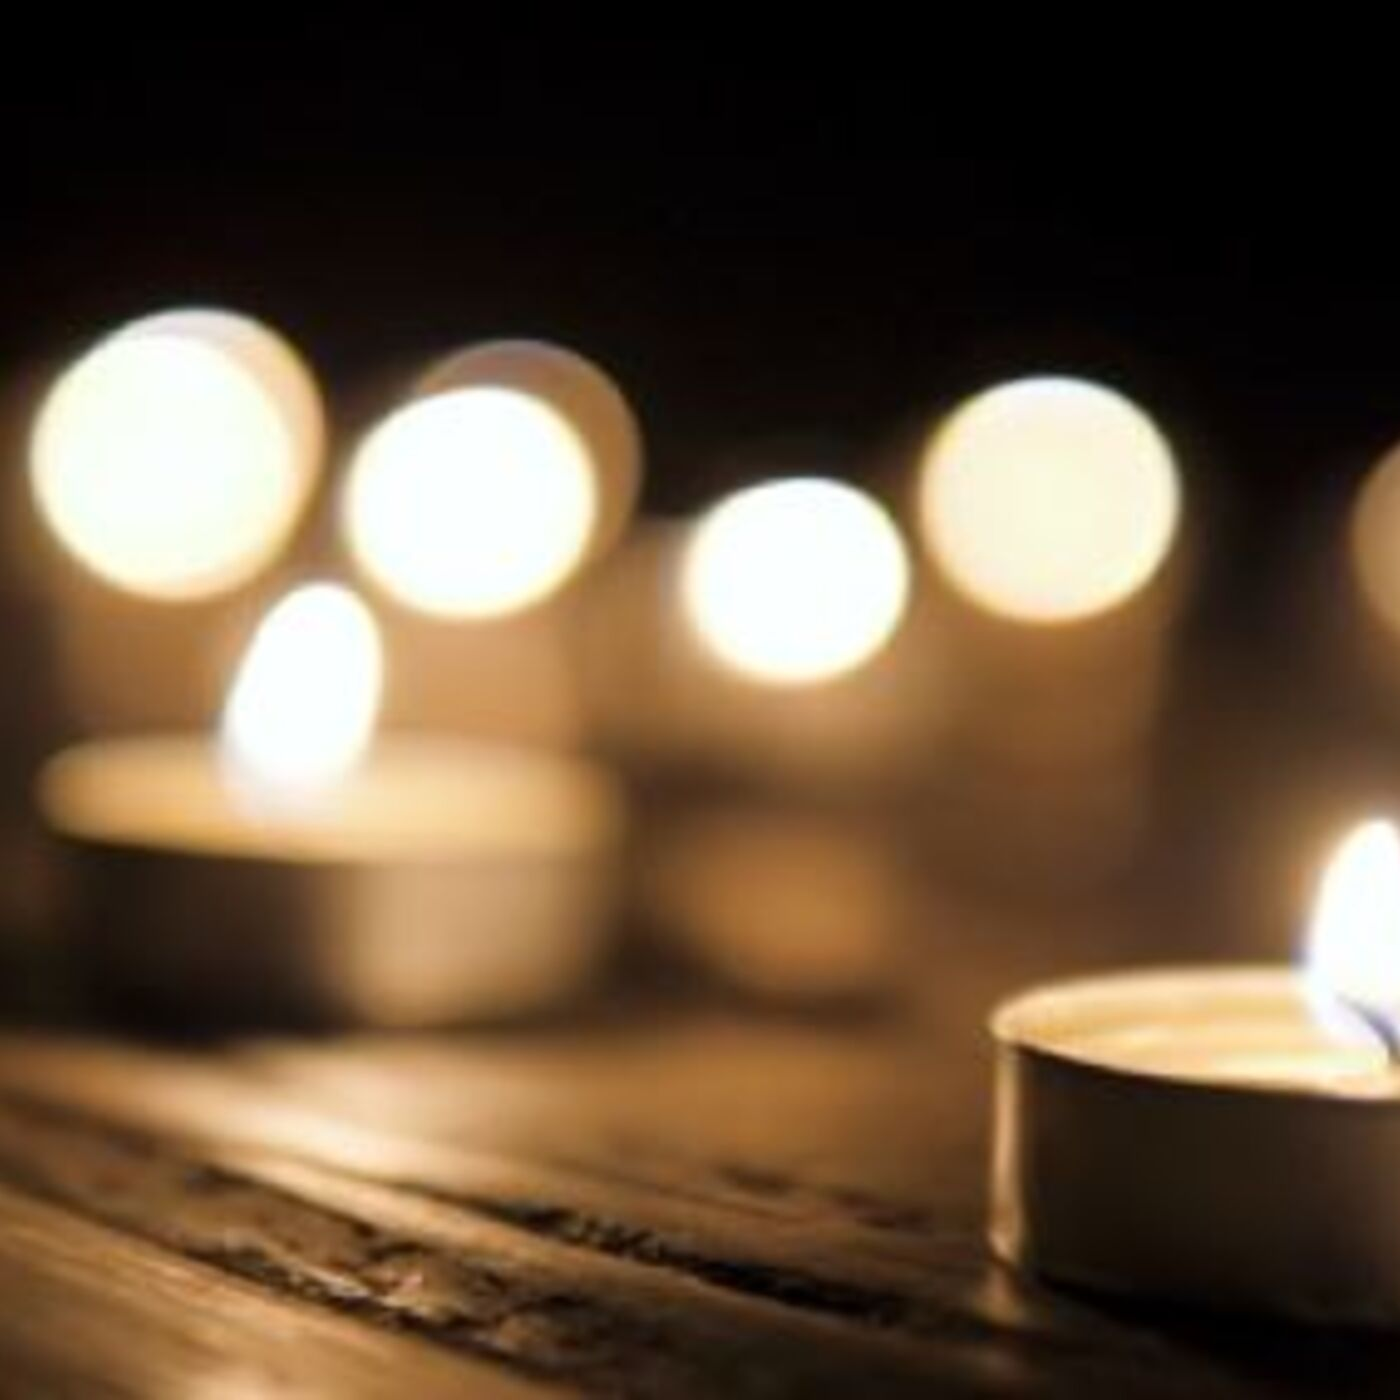 December 20 - Advent 2020: The Peace and Angel Candle